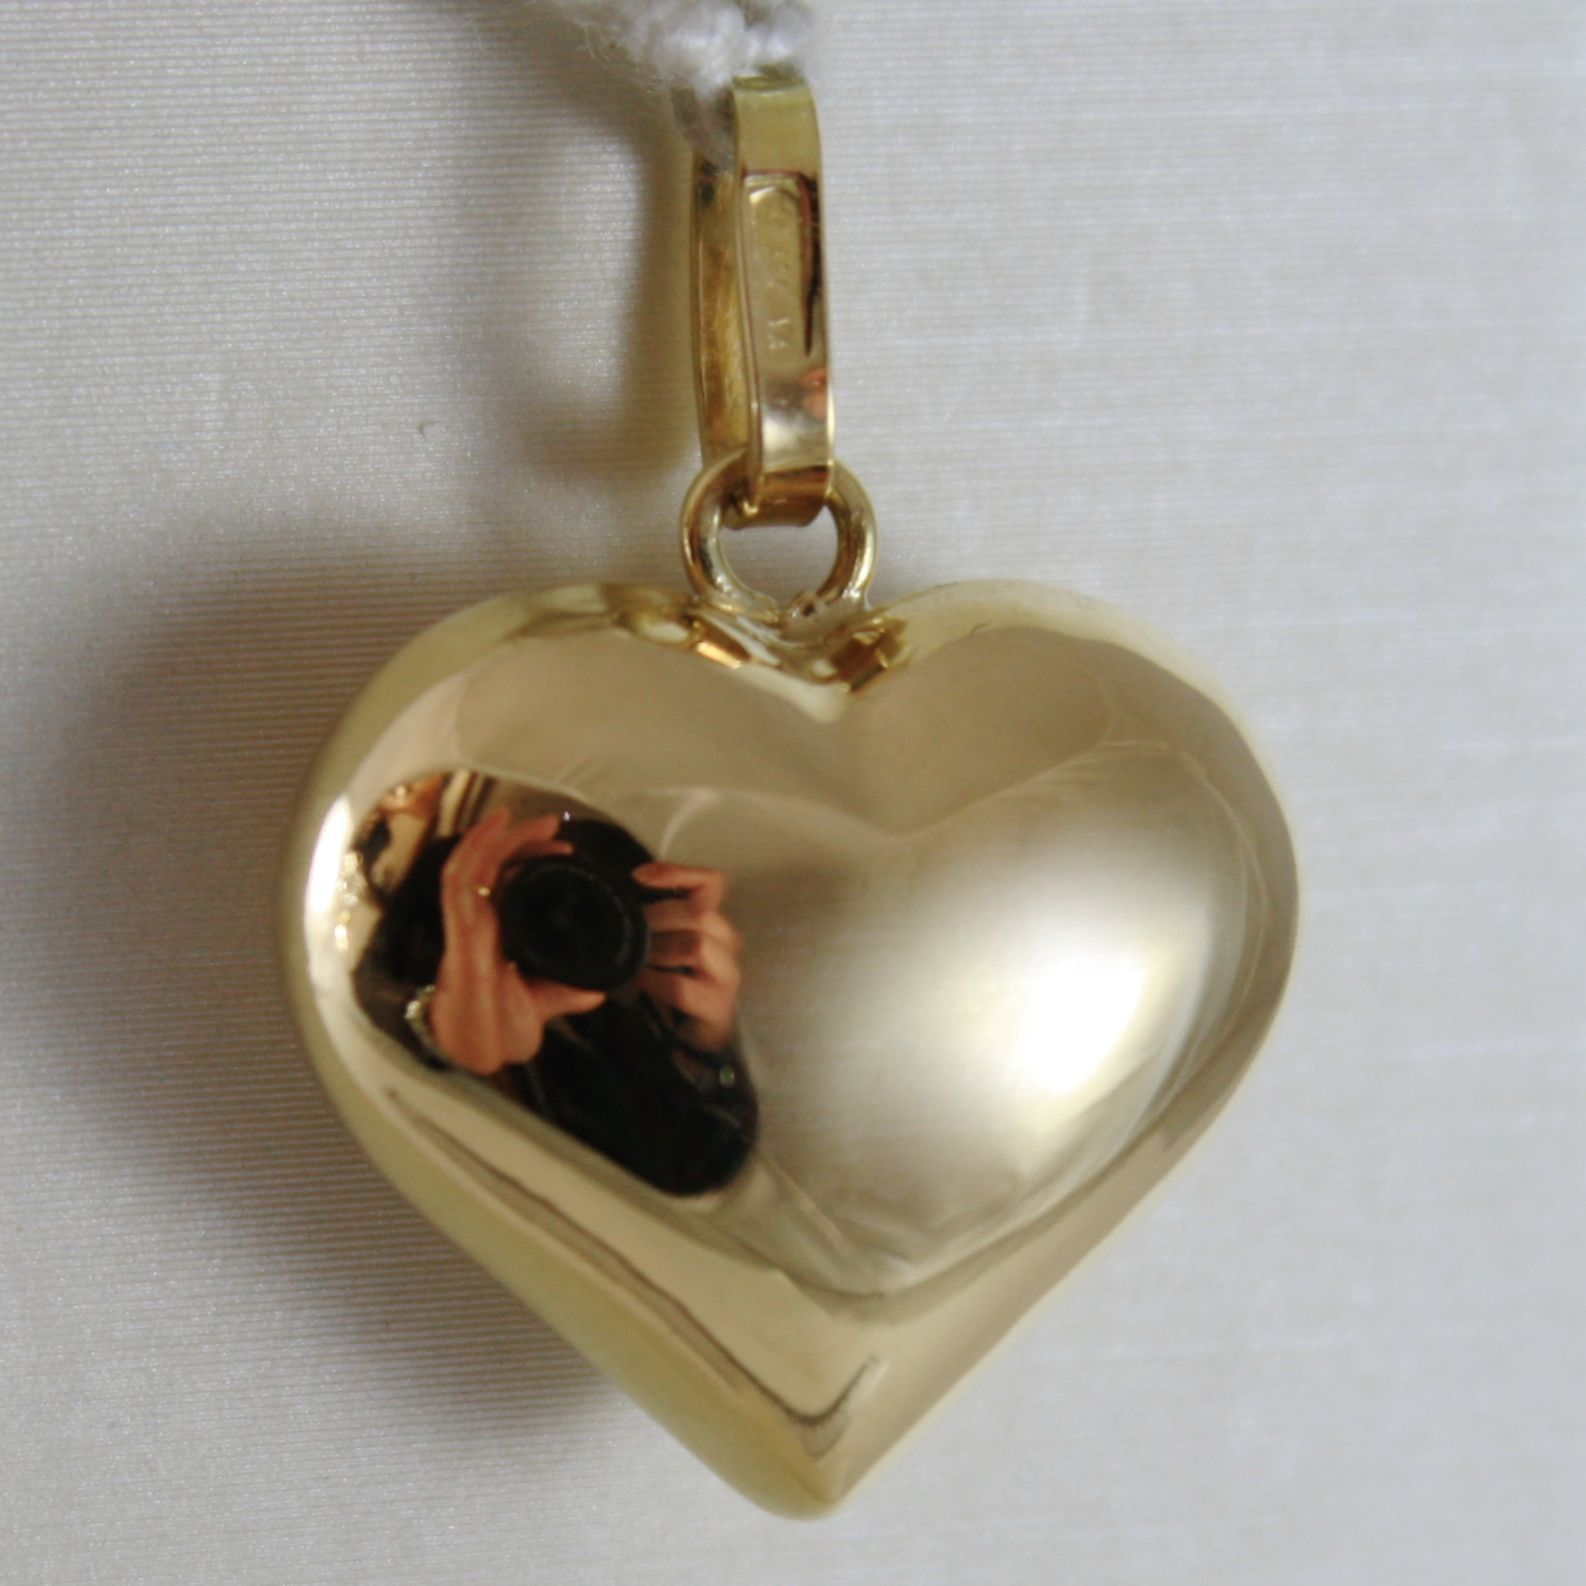 18K YELLOW GOLD ROUNDED HEART CHARM PENDANT SHINY .98 INCHES MADE IN ITALY